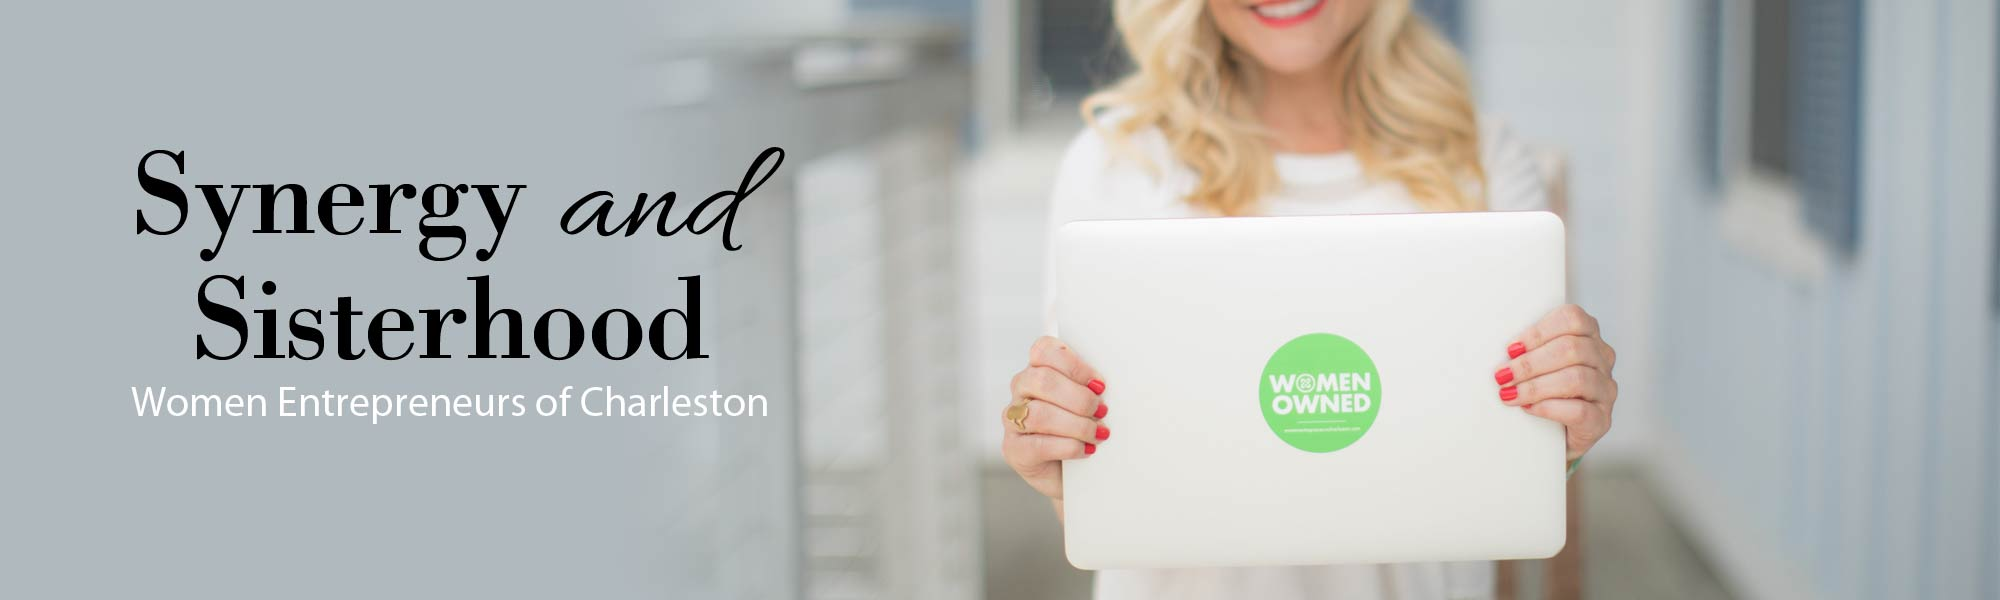 Synergy and Sisterhood: Women Entrepreneurs of Charleston